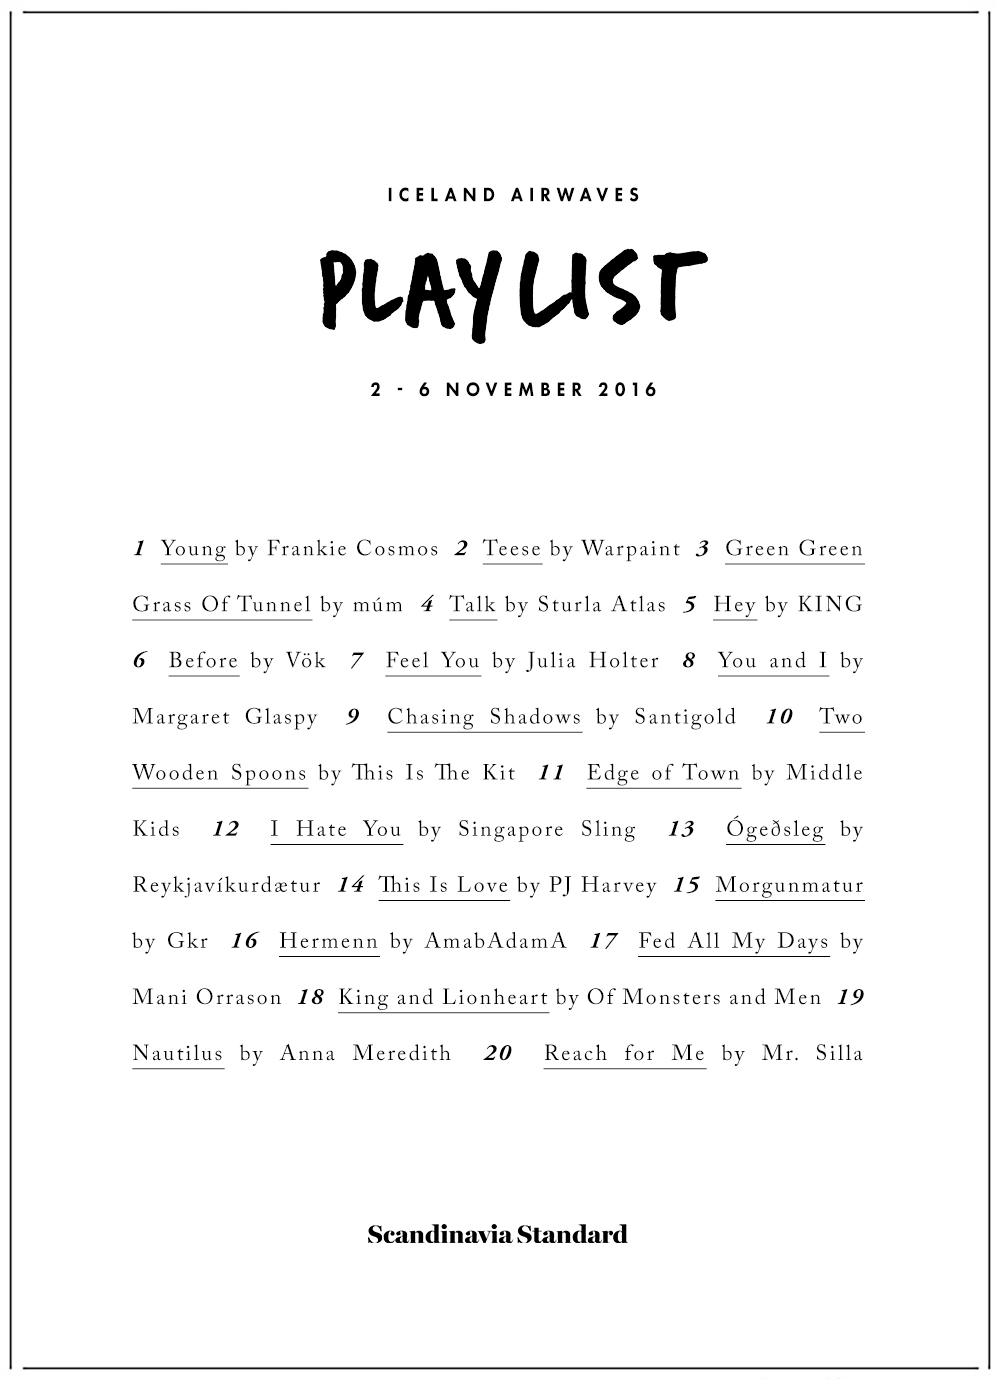 iceland-airwaves-playlist-2016-party-in-a-post-scandinavia-standard